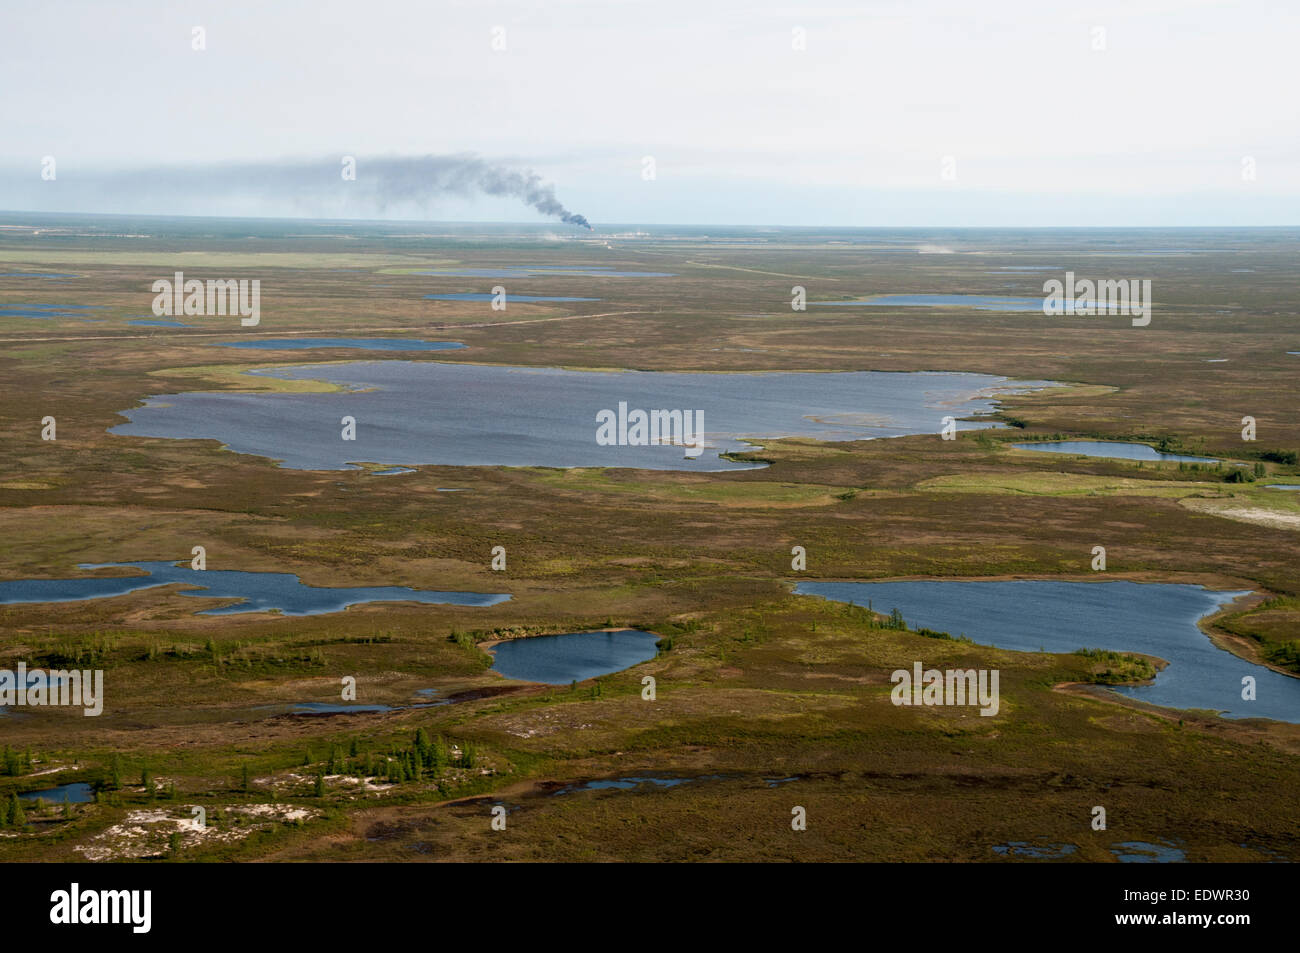 In the Russian tundra of Krasnoselkupsky district in northwest Siberia only some centimeter of permafrost is thawing - Stock Image